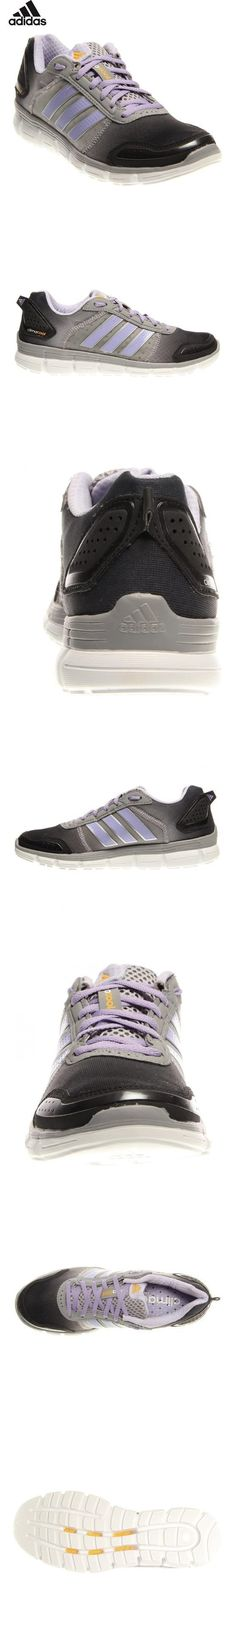 110ba9830  79.9 - New Adidas Women s Climacool Aerate 3 Running Shoes Grey Purple 6